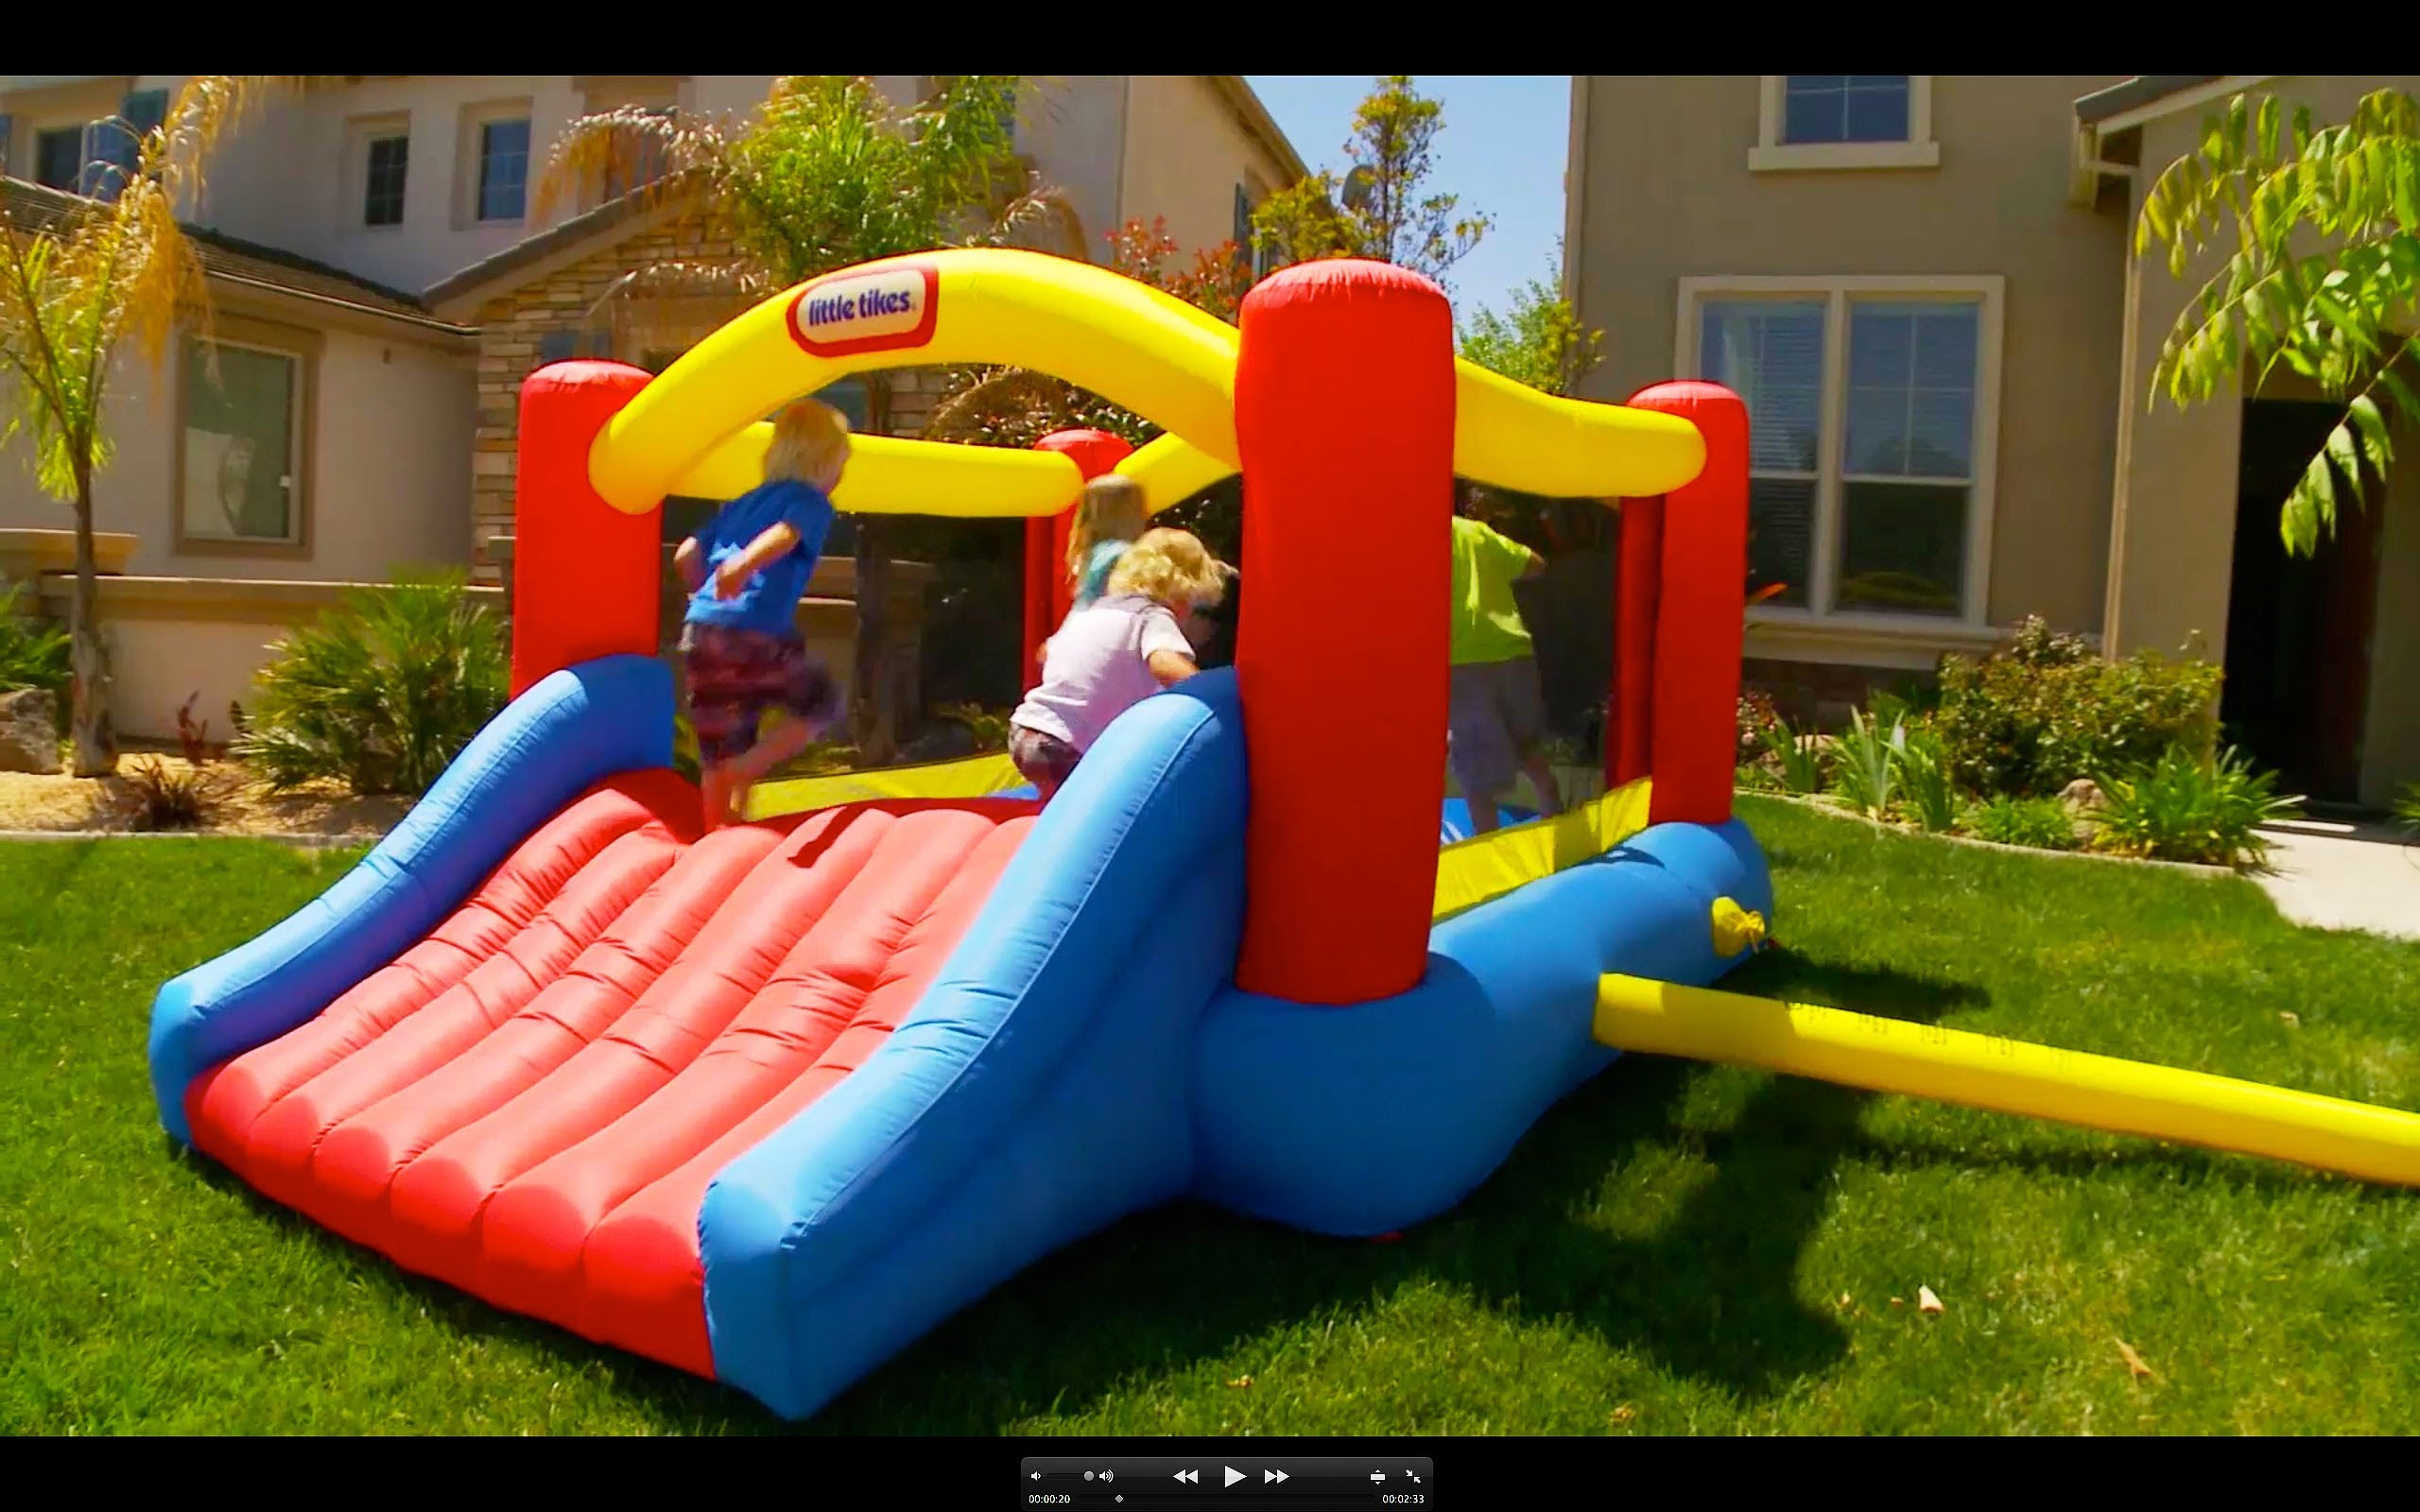 Charming Colorful Little Tikes Bounce House Made Of Caoutchouc With Slide For Play Yard Ideas